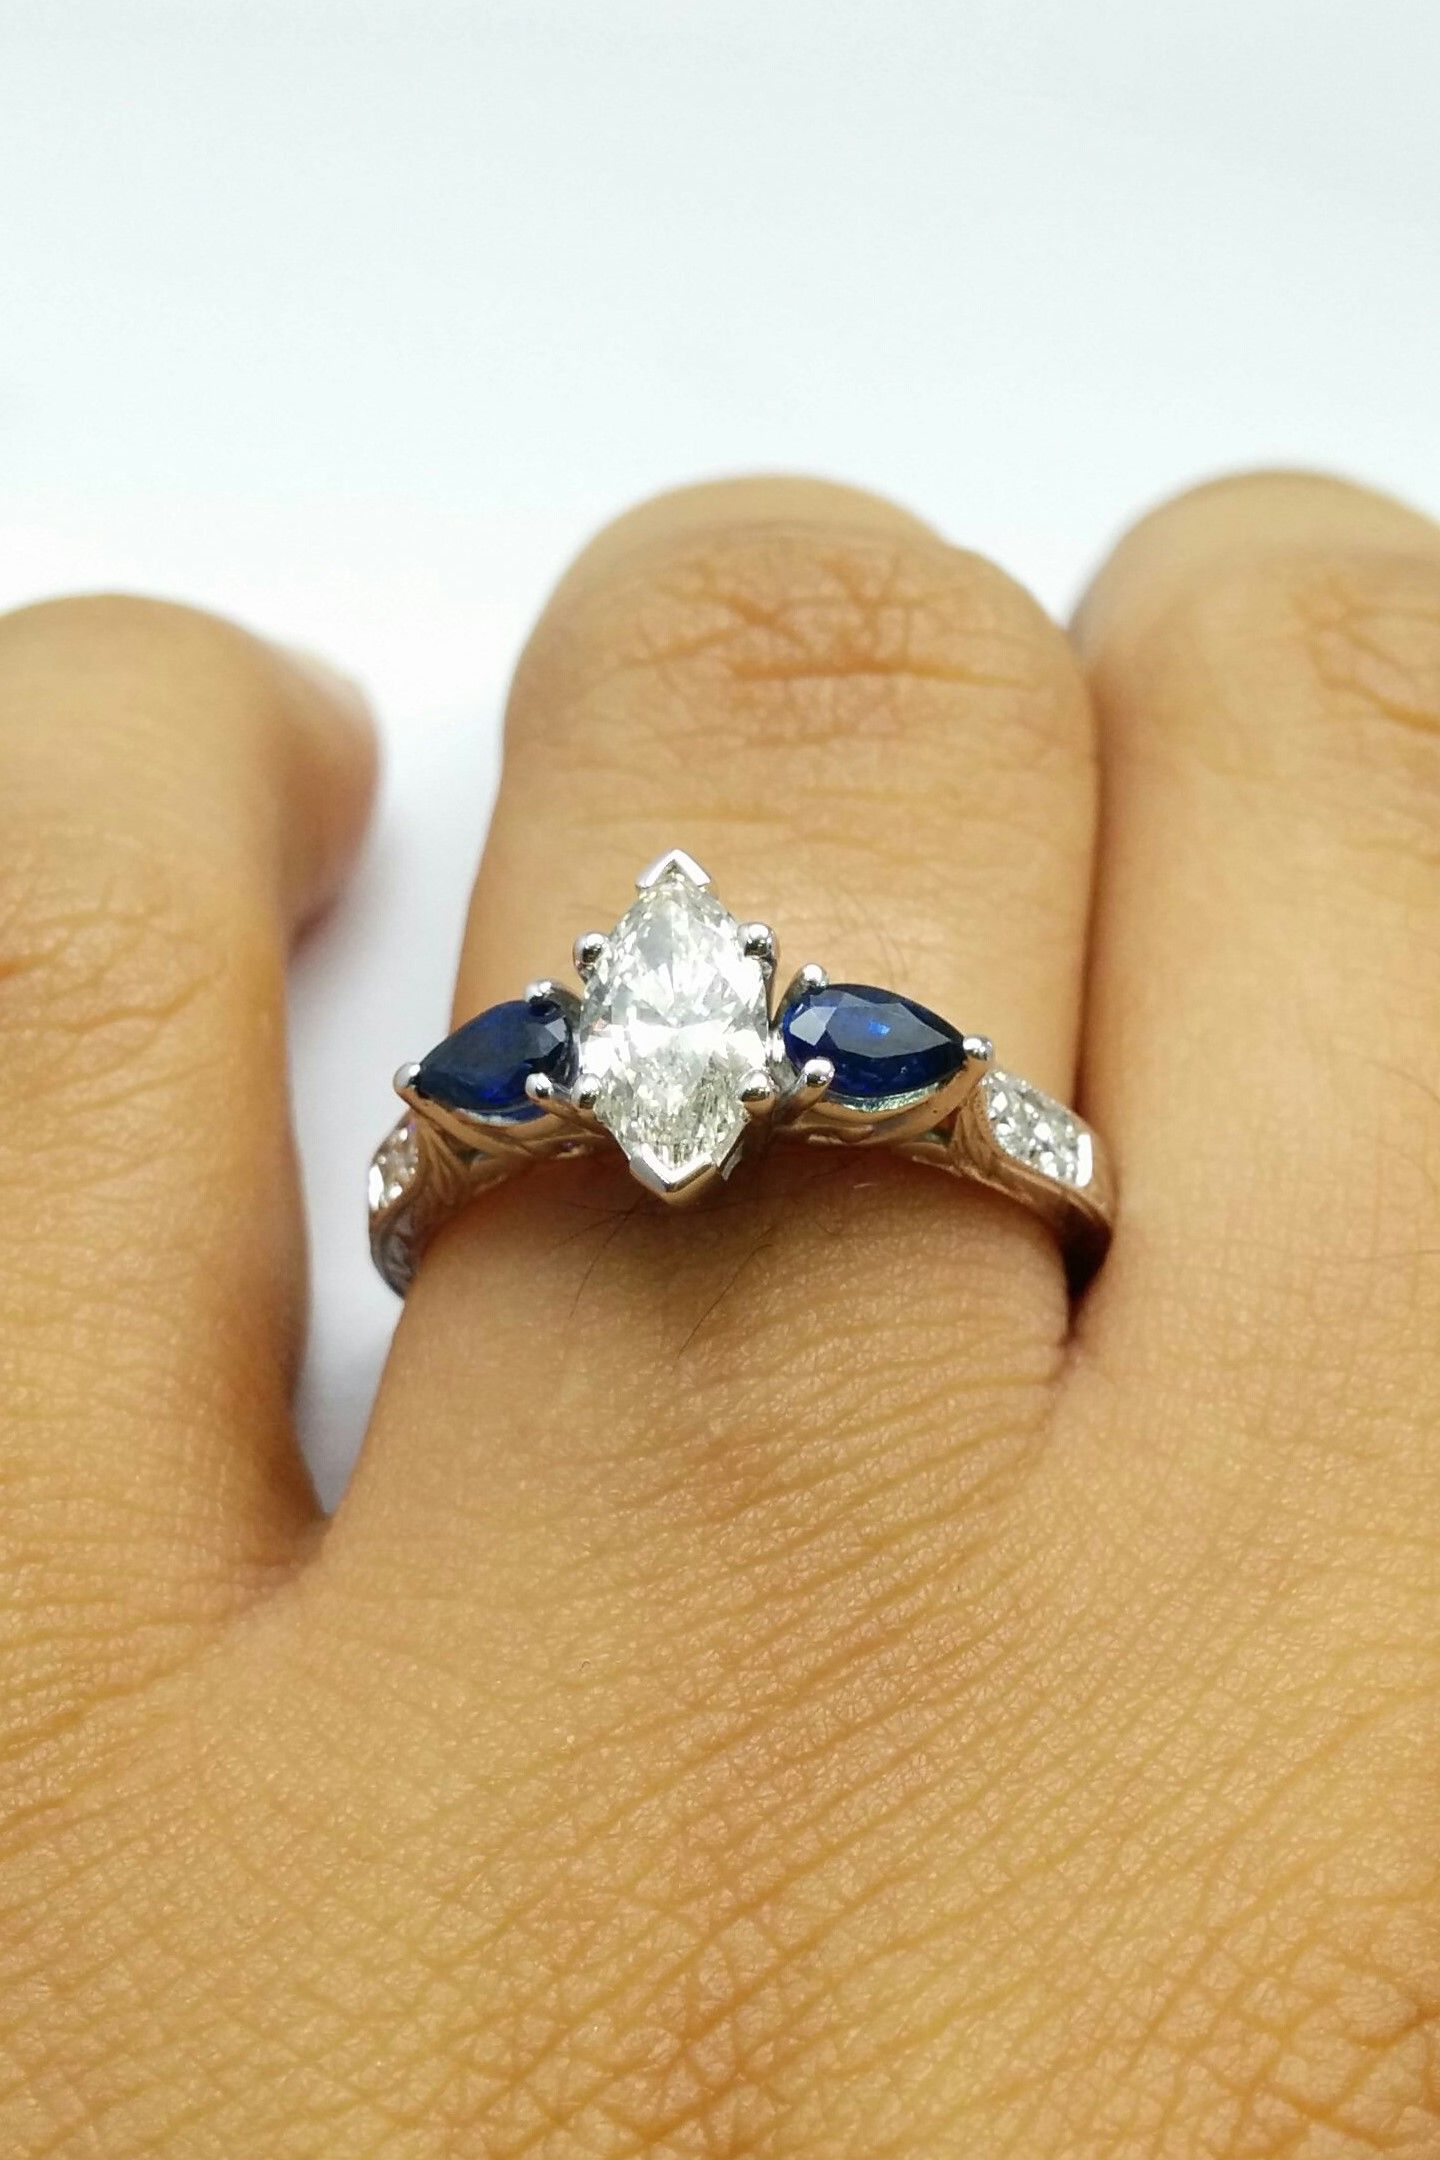 zirconium buy new wedding cheap font zirconia ring cz black royal popular indonesia stone set b blue rings platinum